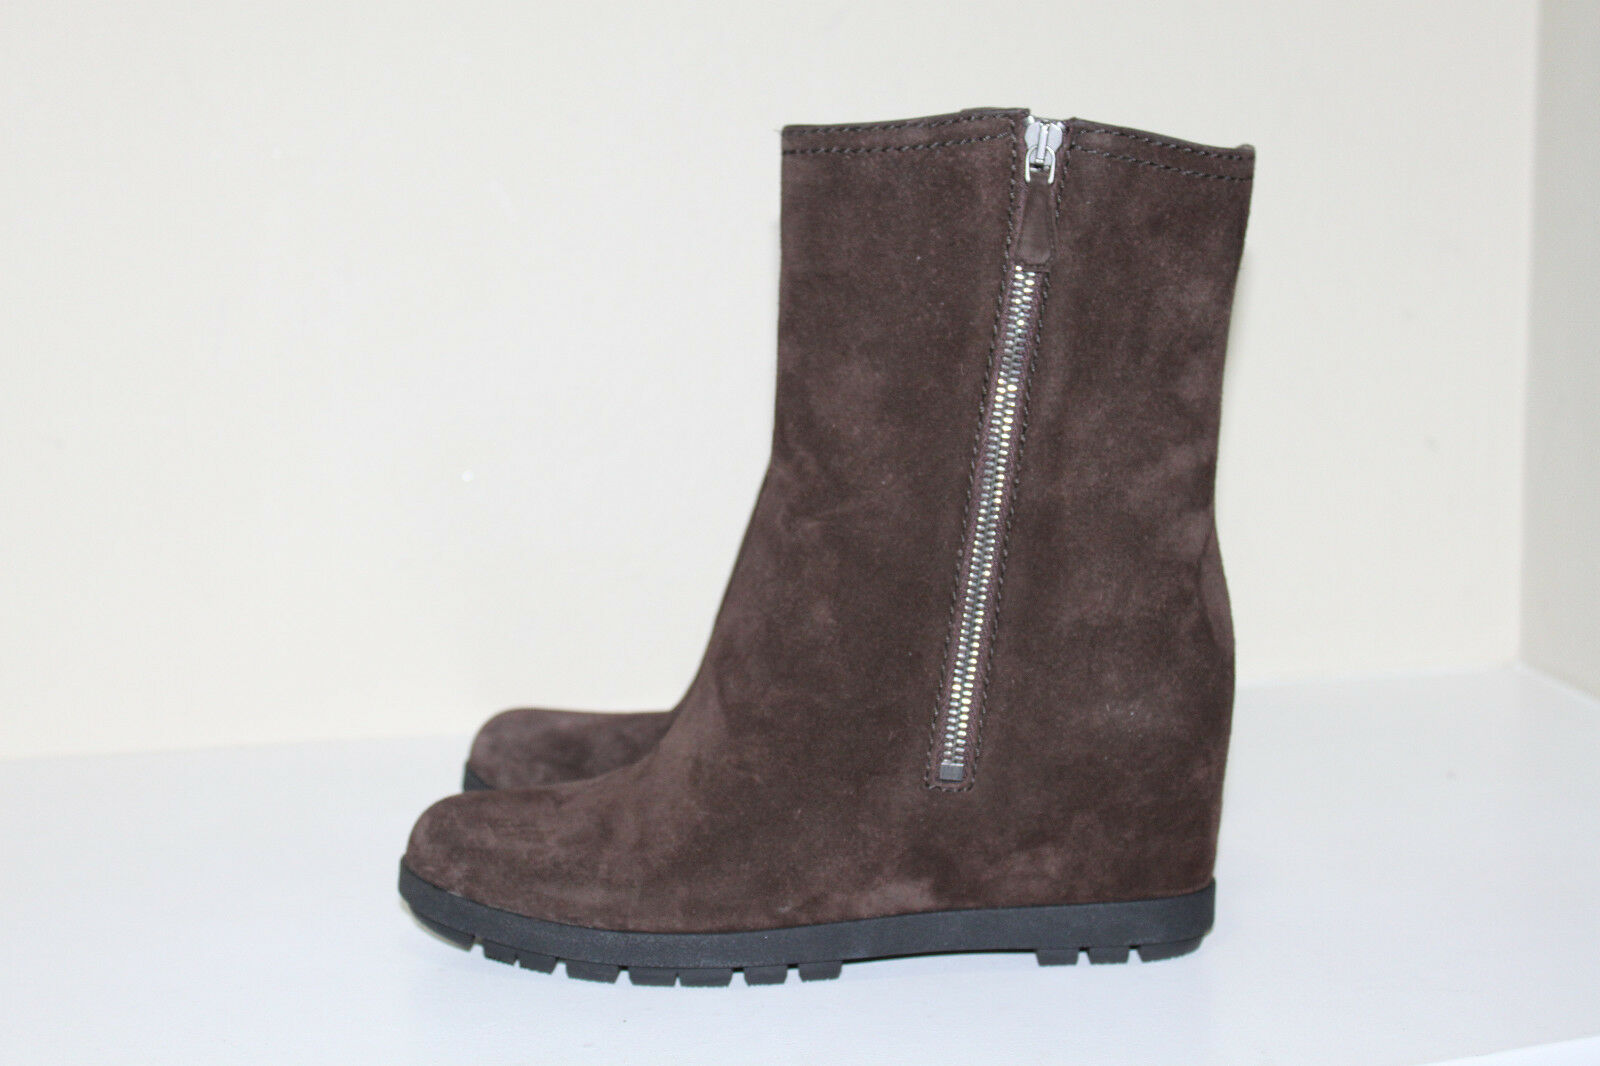 New sz 9 / 39 Prada Braun Suede Boot Wedge  Hell Ankle Boot Suede Damens schuhes c25f21